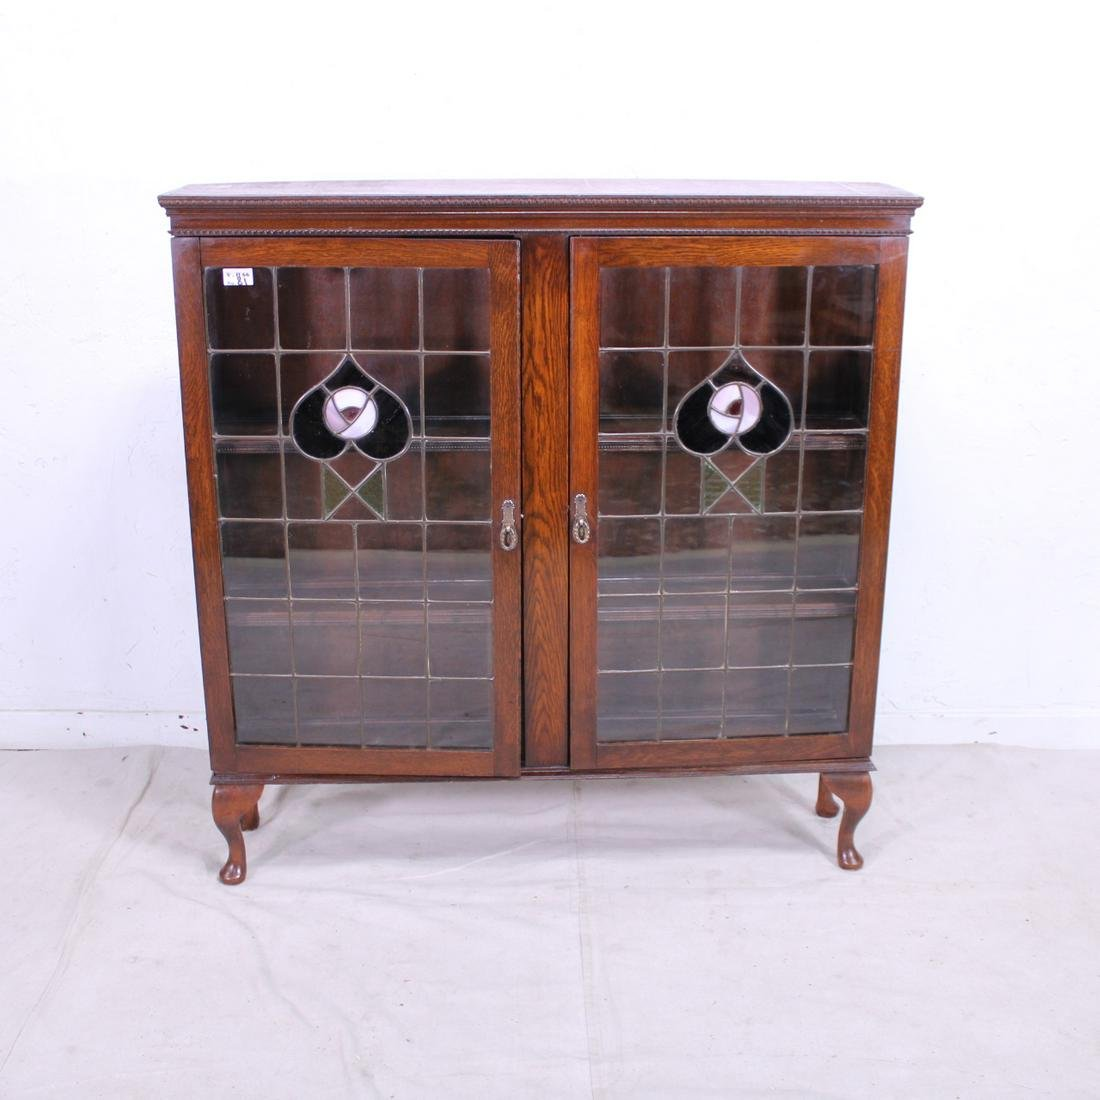 British Display Cabinet with Stained Glass Doors in Oak